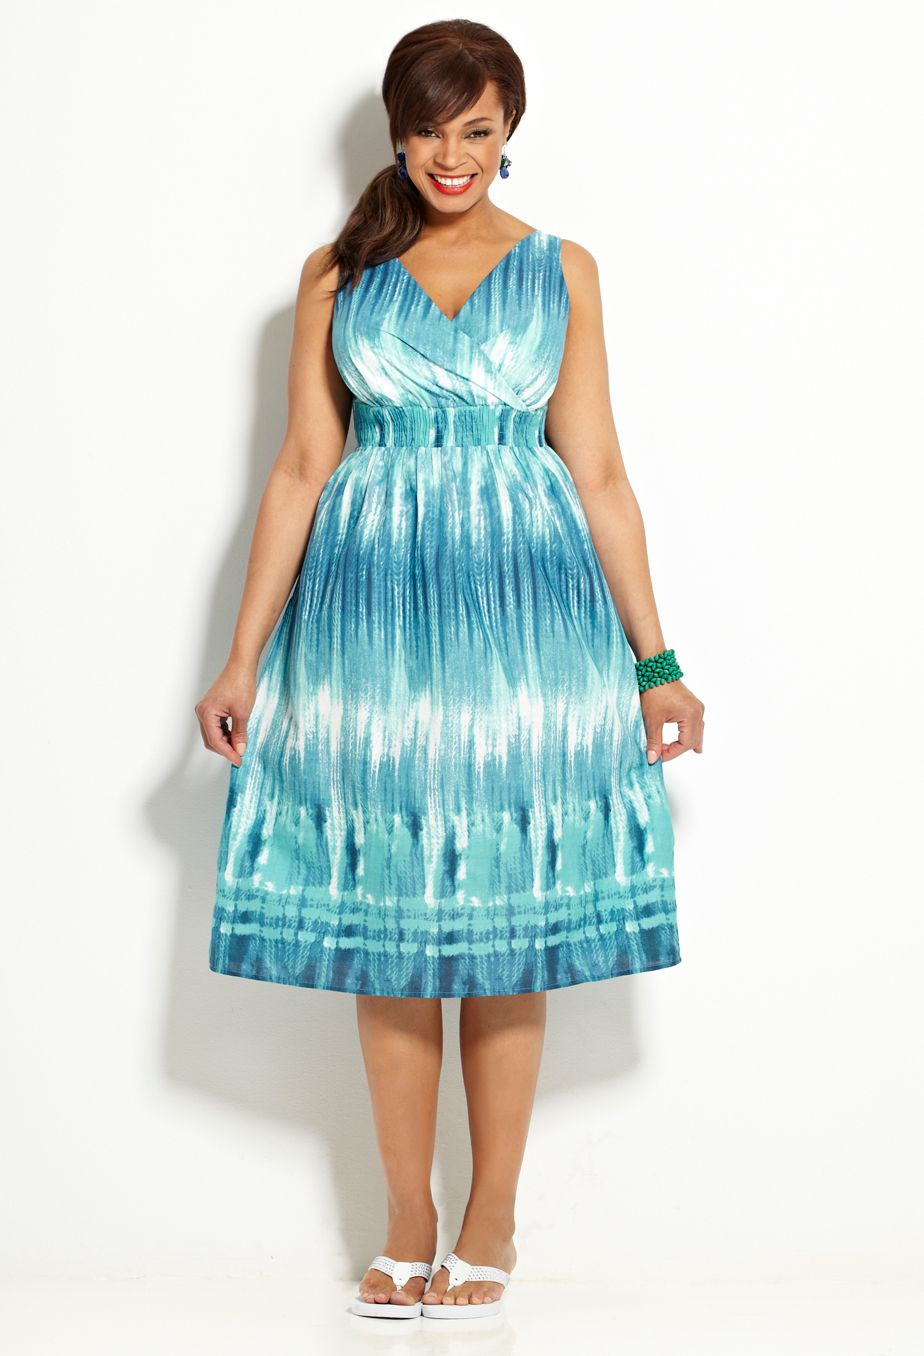 Blue Dip Dyed Cotton Sun Dress from Avenue summer Collection ...